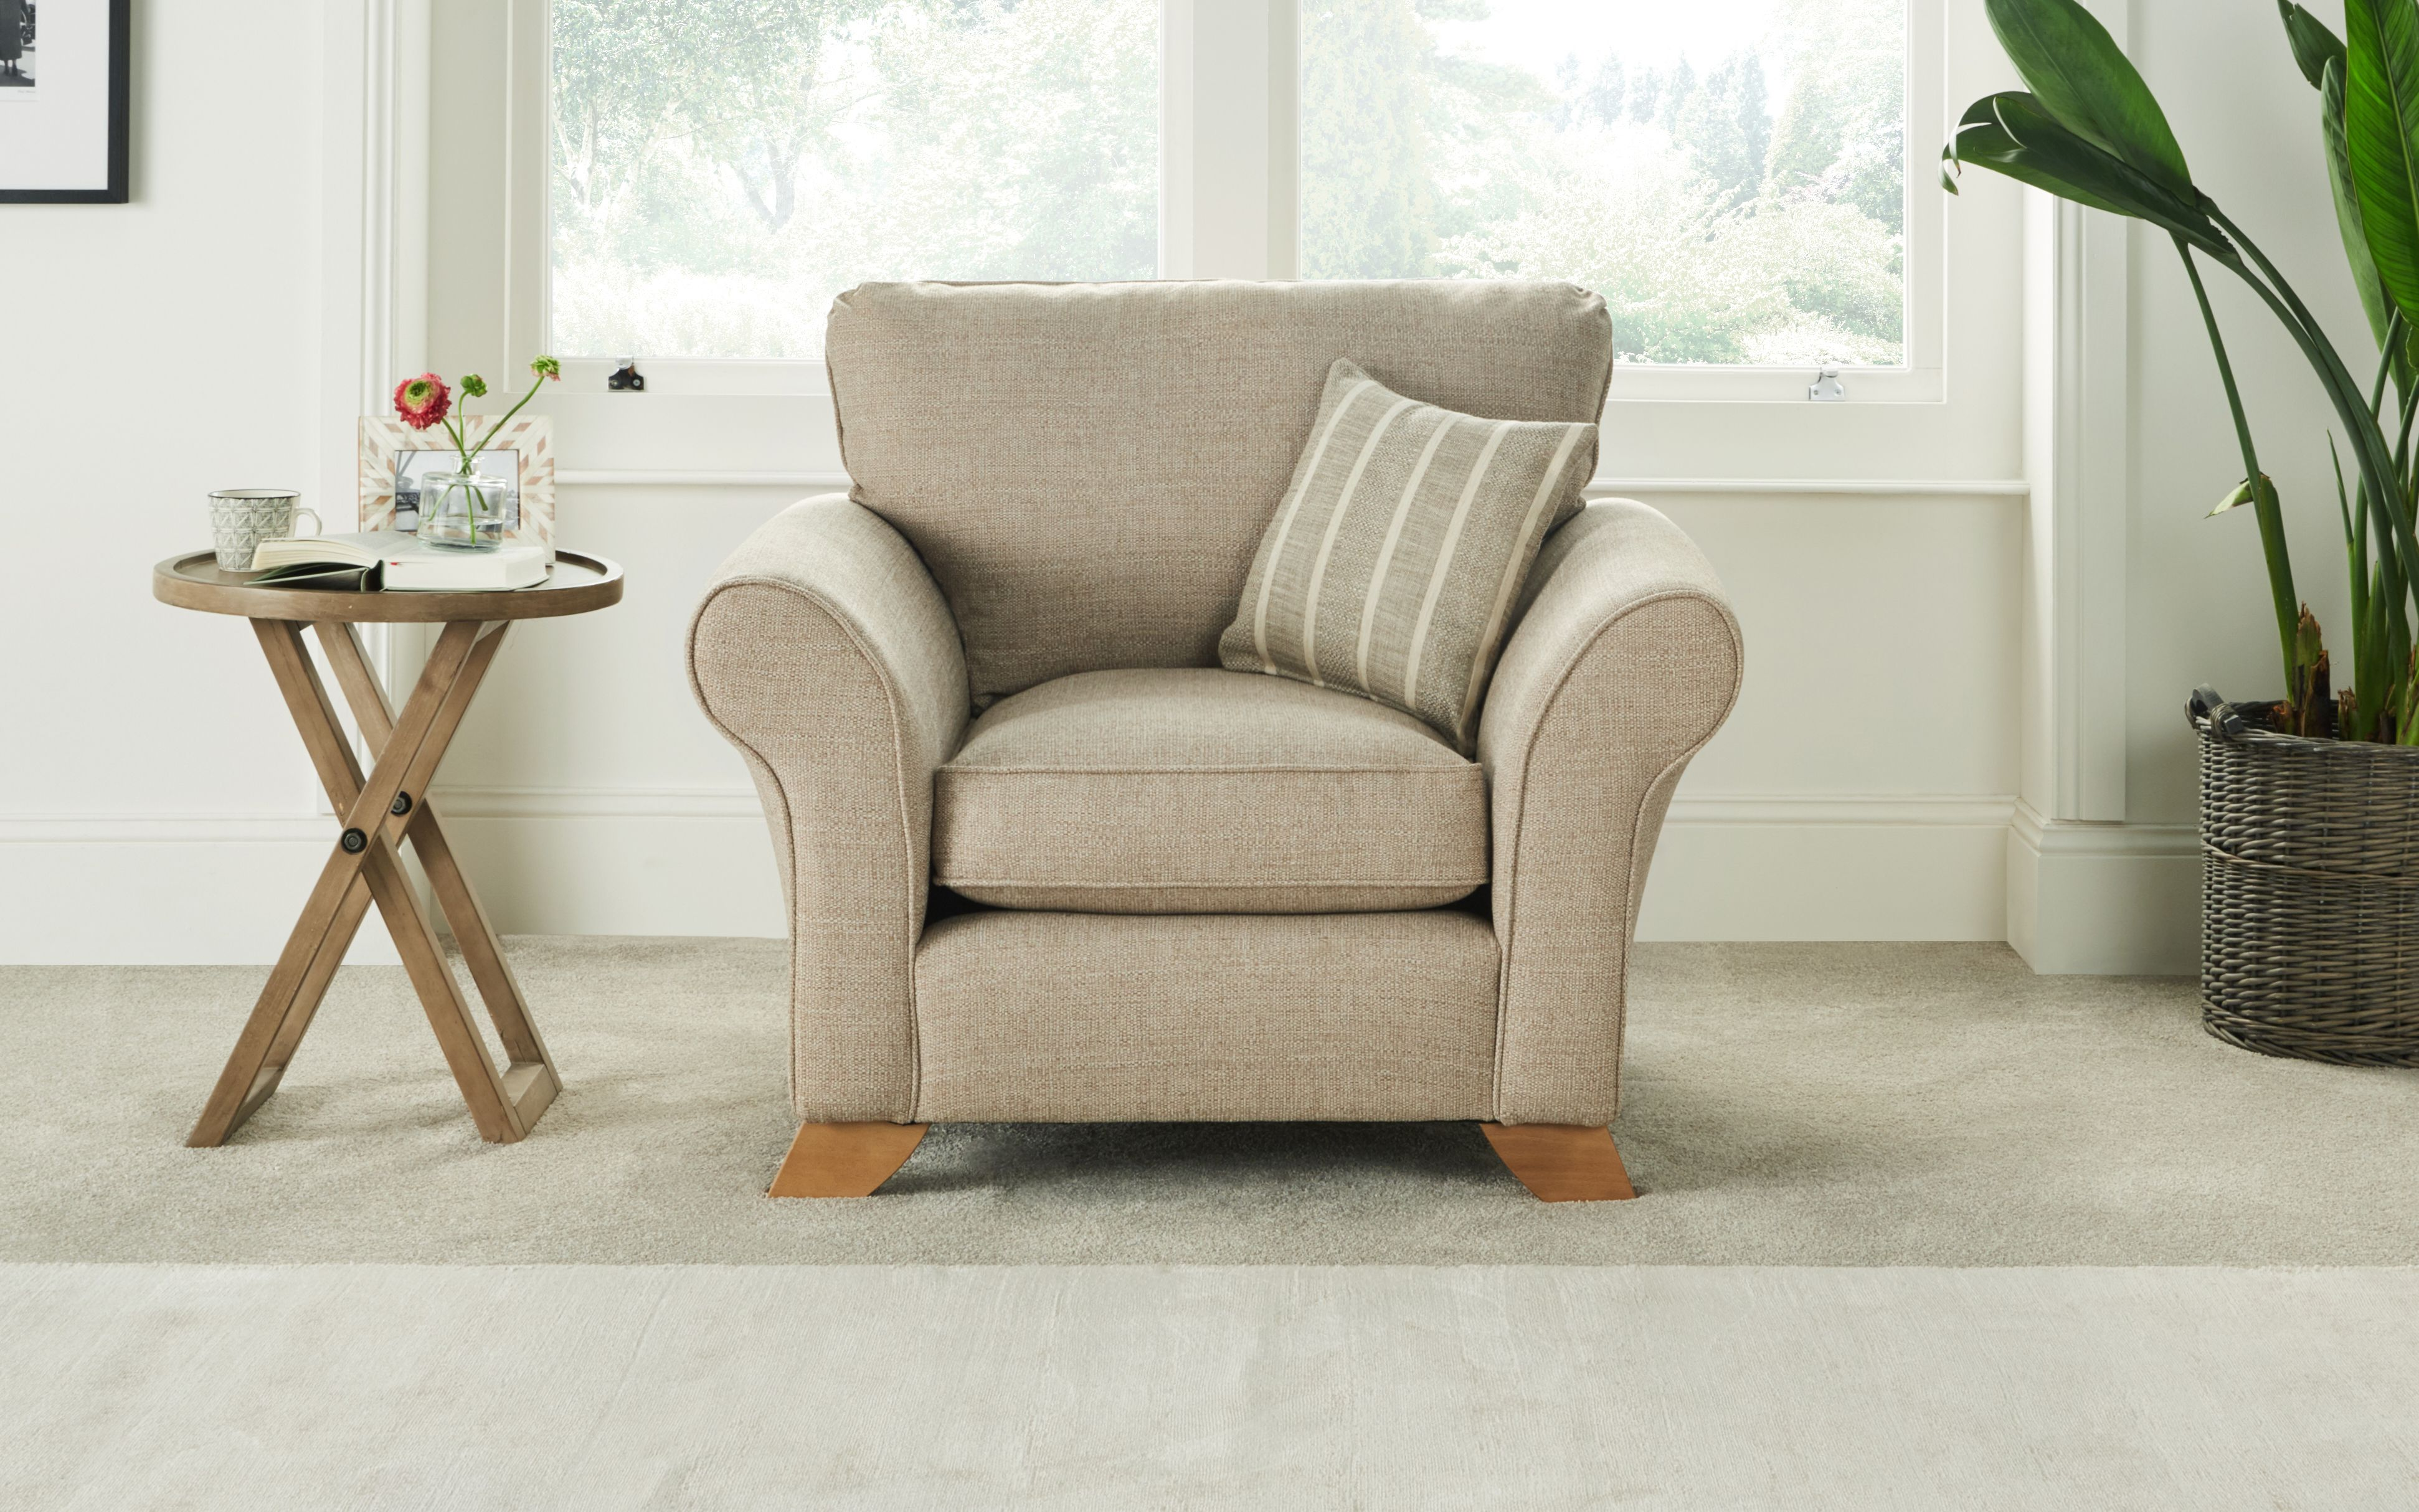 house of fraser linea sofa review leather sofas on finance furniture sale -